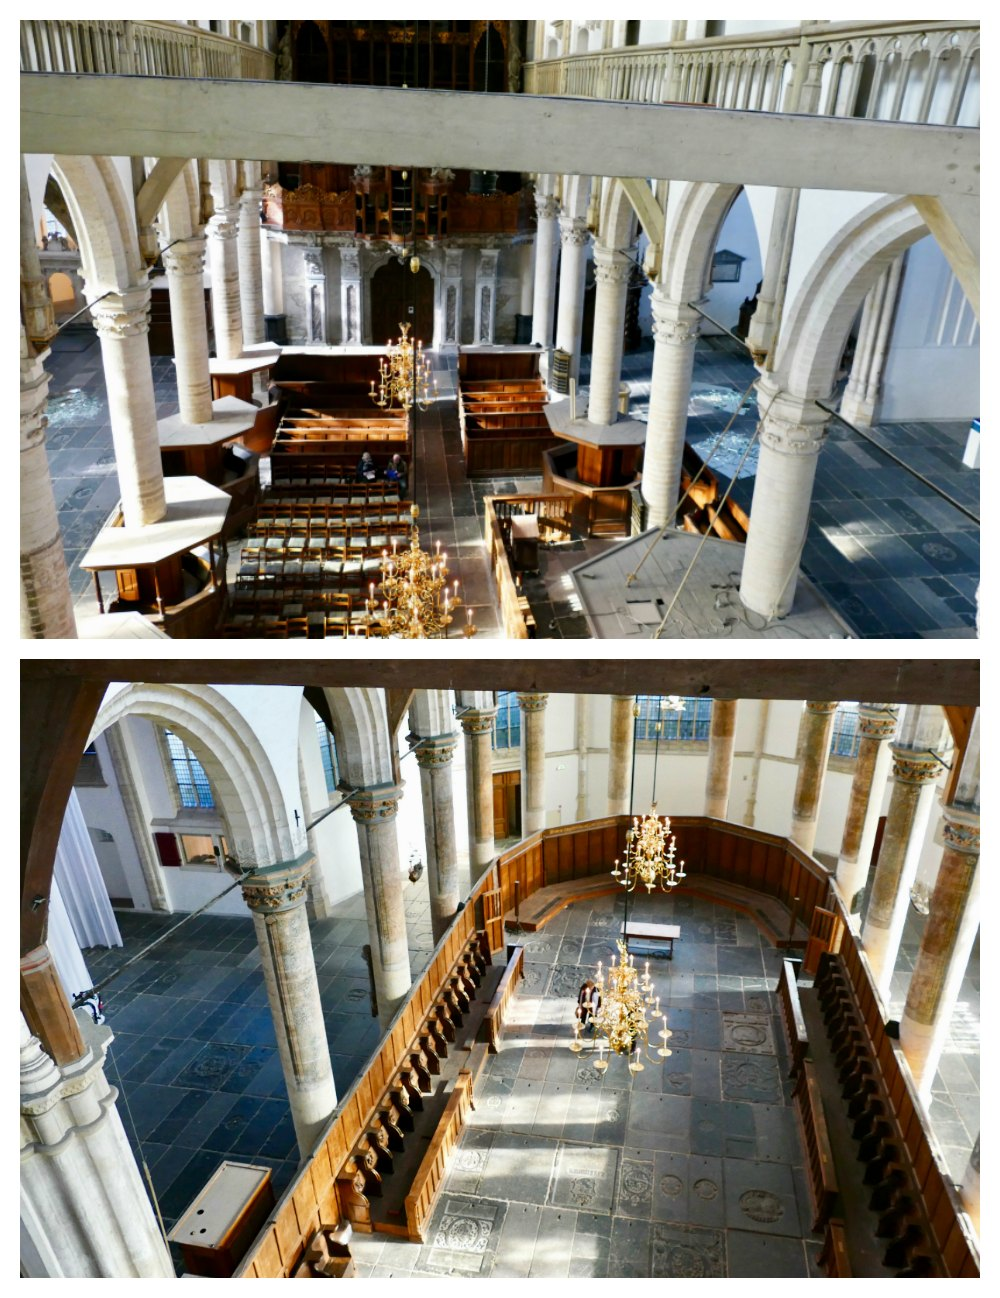 Views over the Oude Kerk from 15 meters high |curlytraveller.com